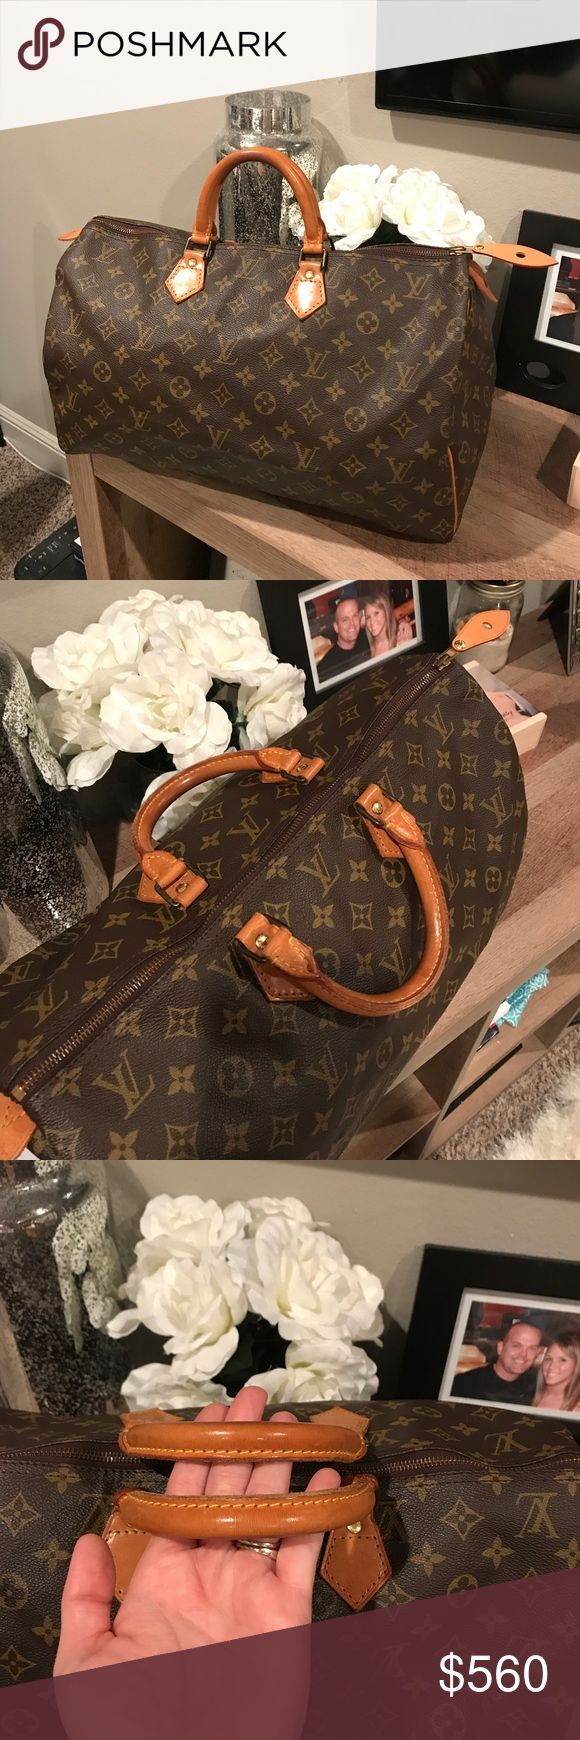 Authentic Louis Vuitton speedy 40 Great condition speedy 40. No foul smell, no exposed pipping, no cracks on canvas, no stains. Even honey patina. Does not come with dustbag. Louis Vuitton Bags Totes